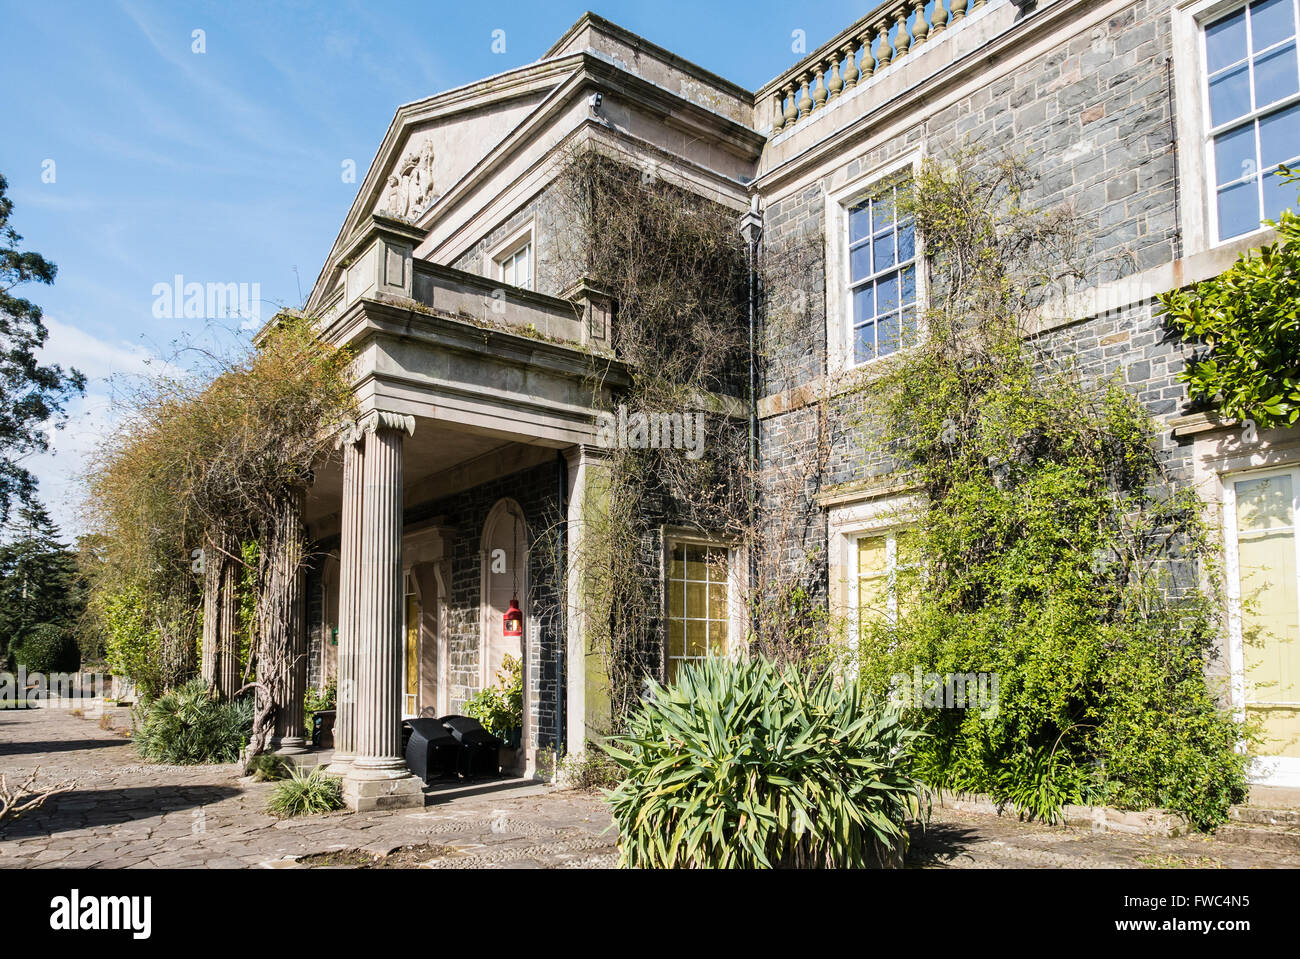 Front entrance of a stately home, with climbers growing up the front portico - Stock Image